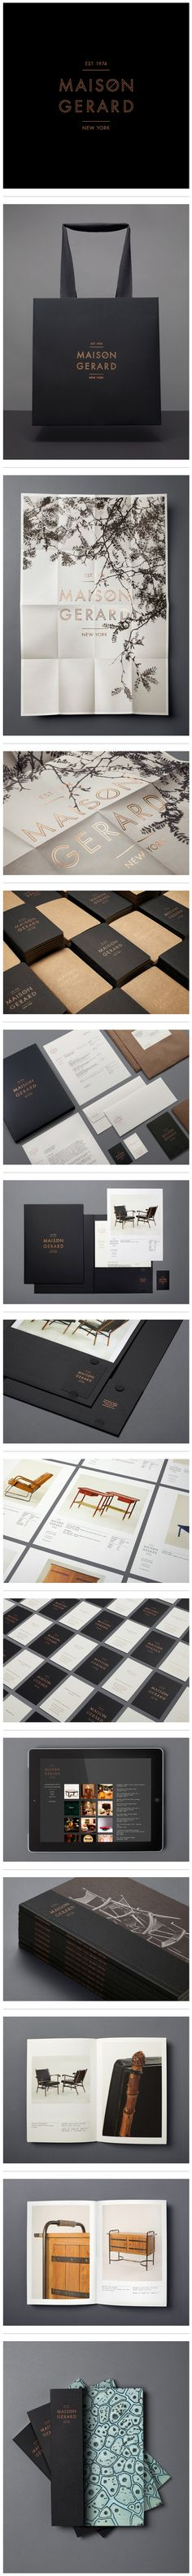 Branding For Maison Gerard A Nyc Based Antiques Dealer Designed By Christian Cervantes Of Motherdesi Logo Design, Web Design, Brand Identity Design, Graphic Design Branding, Typography Design, Layout Design, Print Design, Design Homes, Design Agency